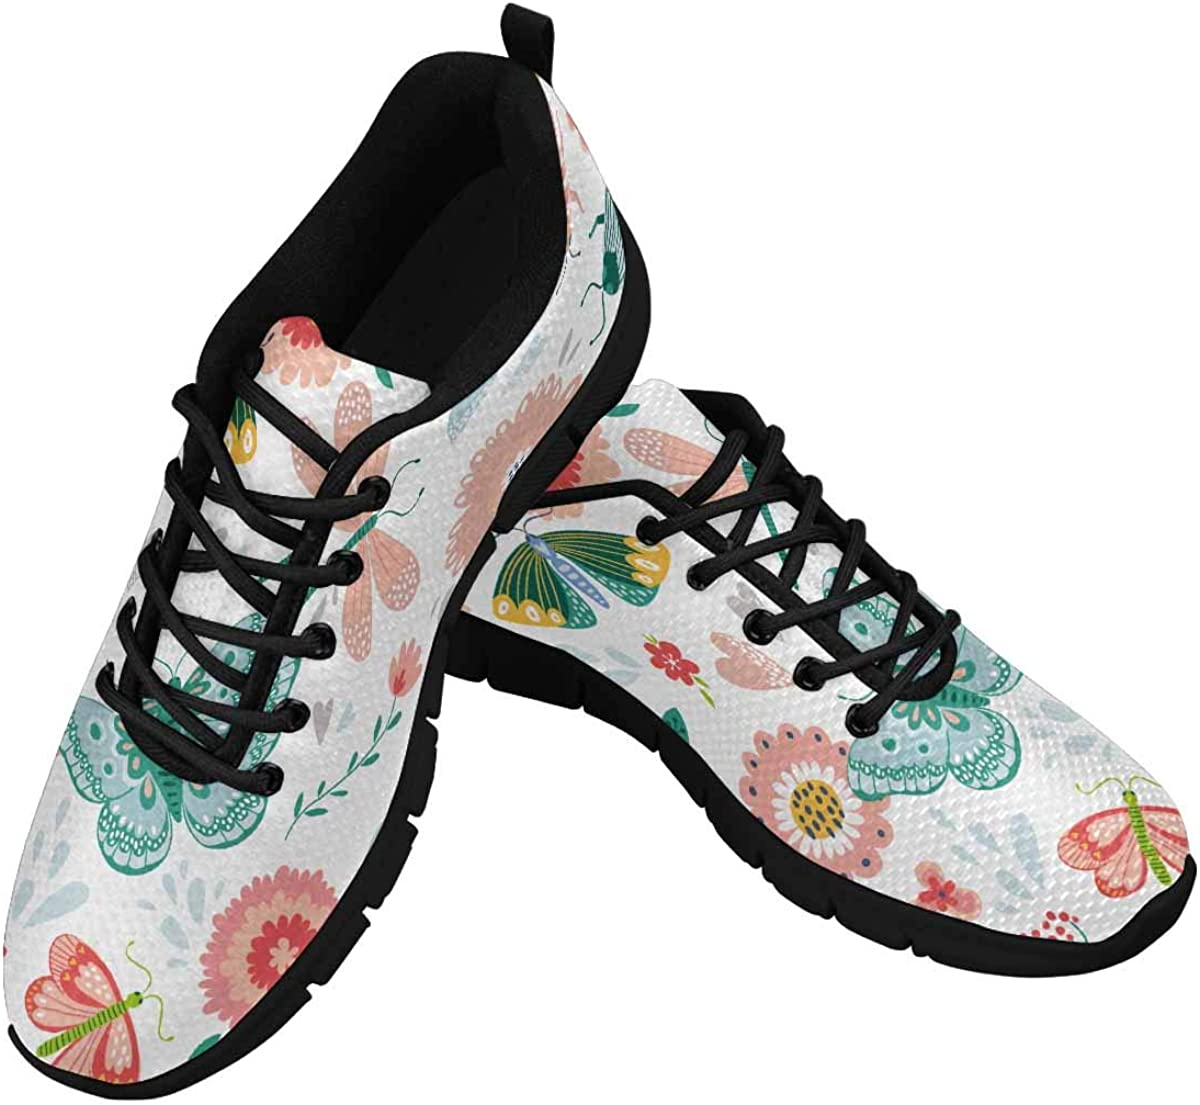 INTERESTPRINT Pattern with Insects and Flowers Women's Tennis Running Shoes Lightweight Sneakers